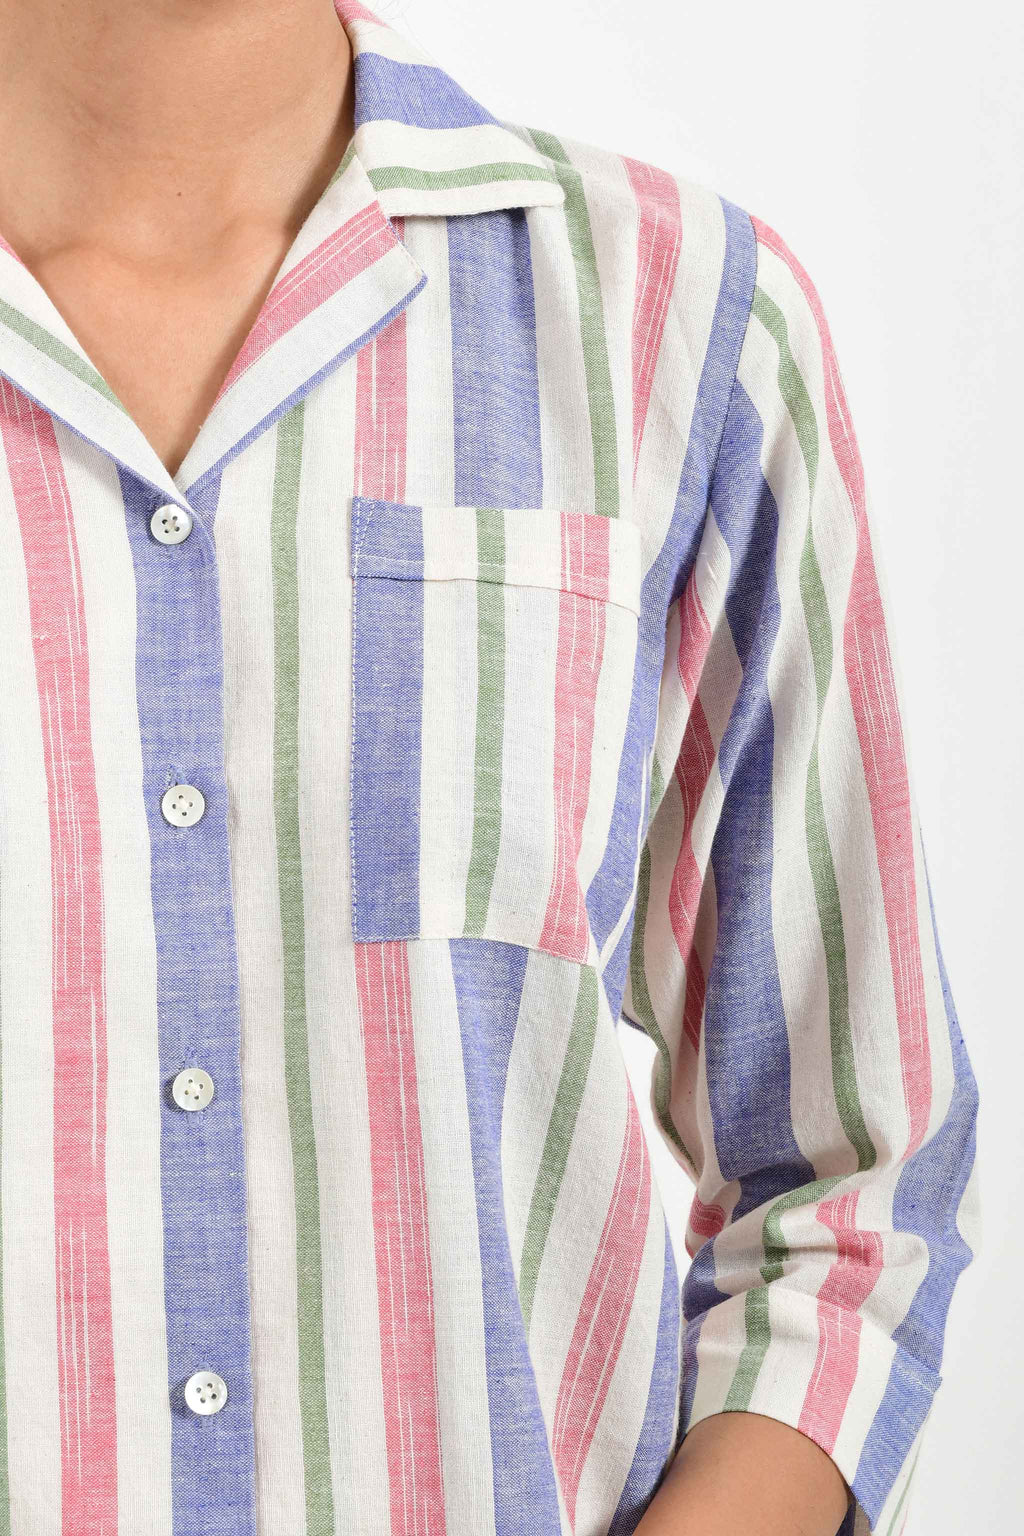 Close-up of an Indian female womenswear fashion model in a candy colored striped azo-free dyed handspun and handwoven khadi cotton nightwear pyjama & shirt by Cotton Rack.